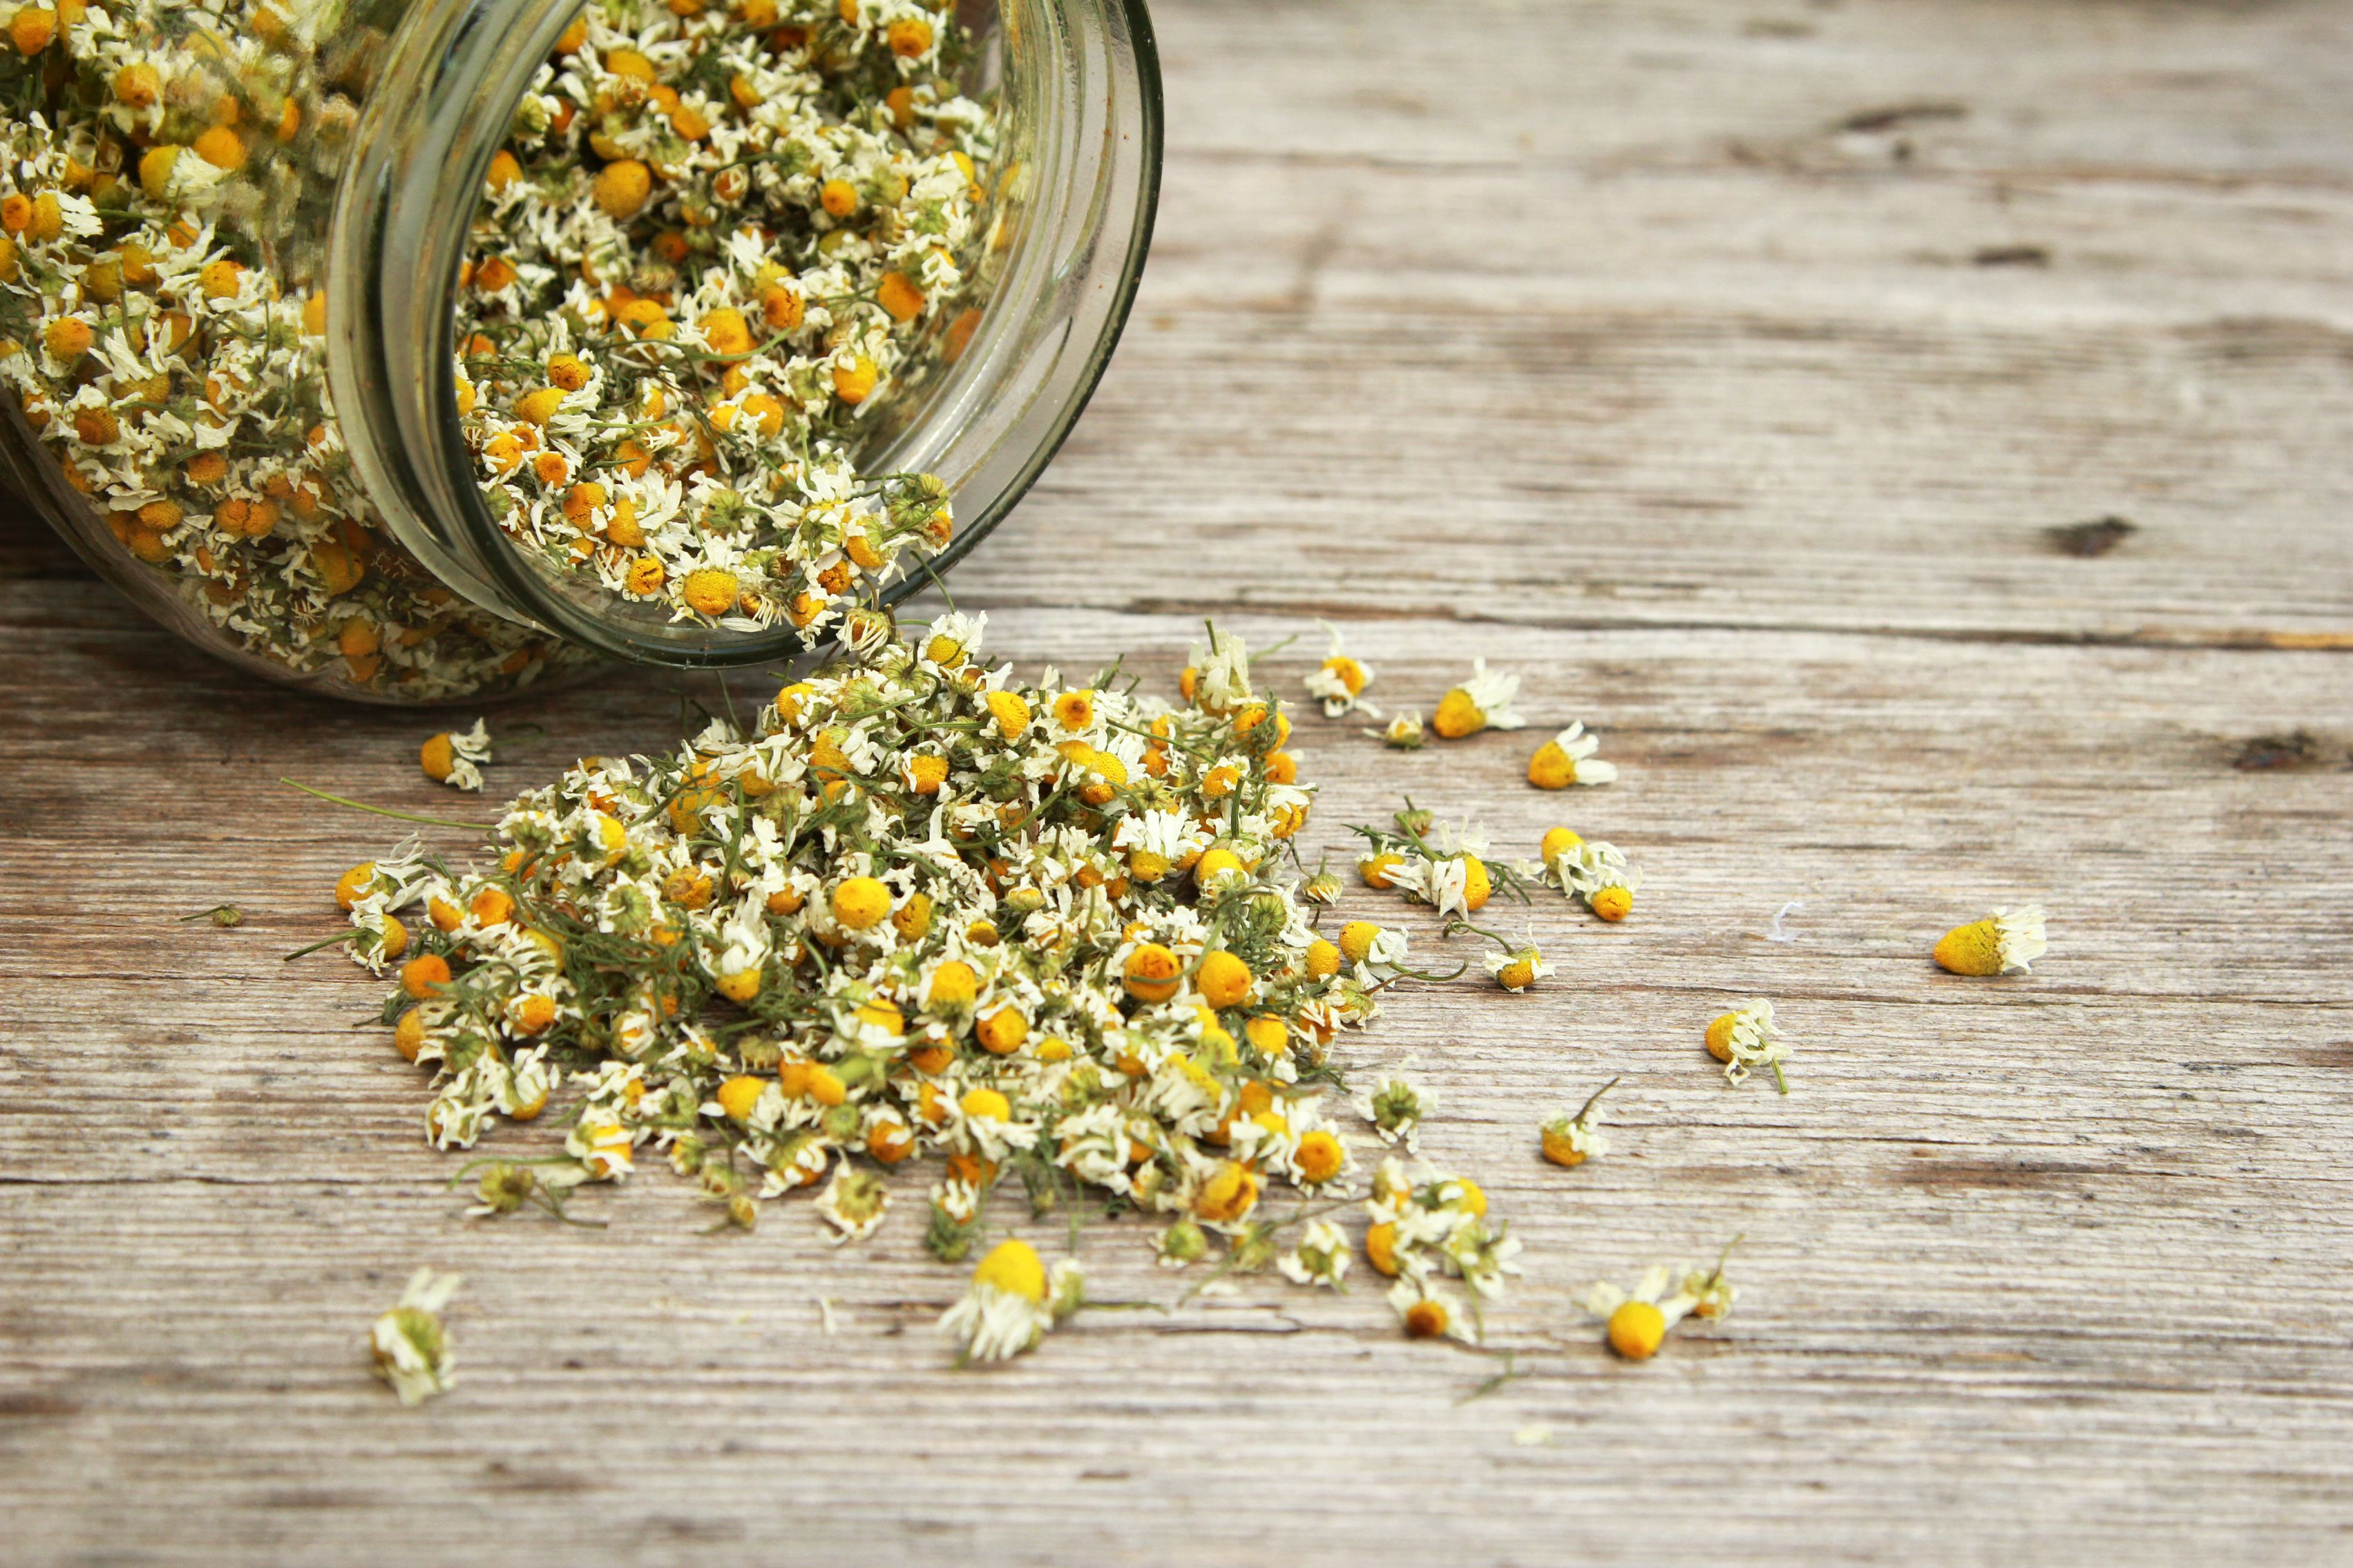 Chamomile for calming and relaxing